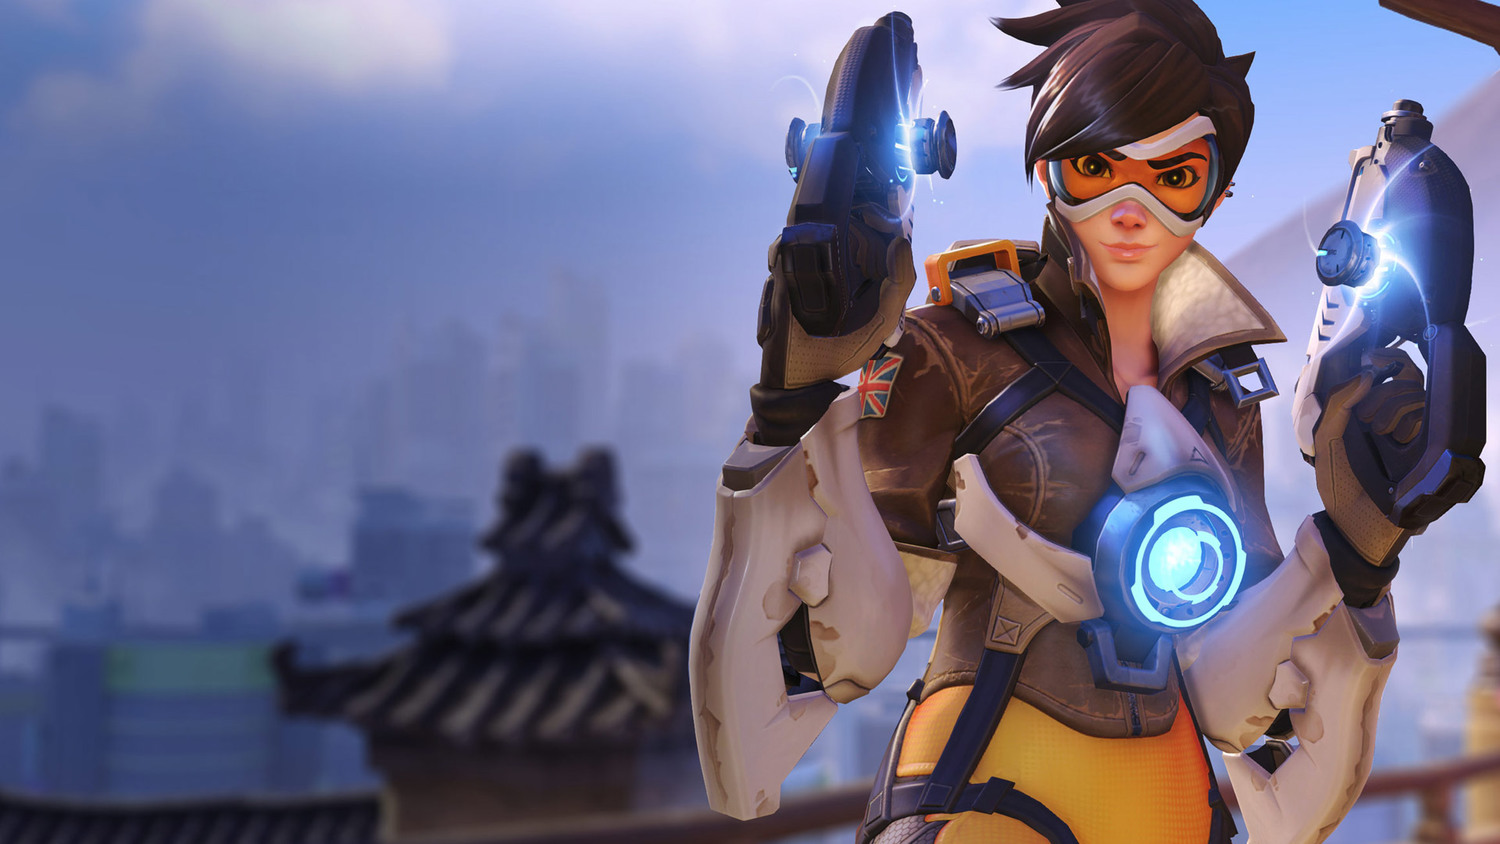 OVERWATCH Runs At 60FPS On Both PS4 And Xbox One — GameTyrant